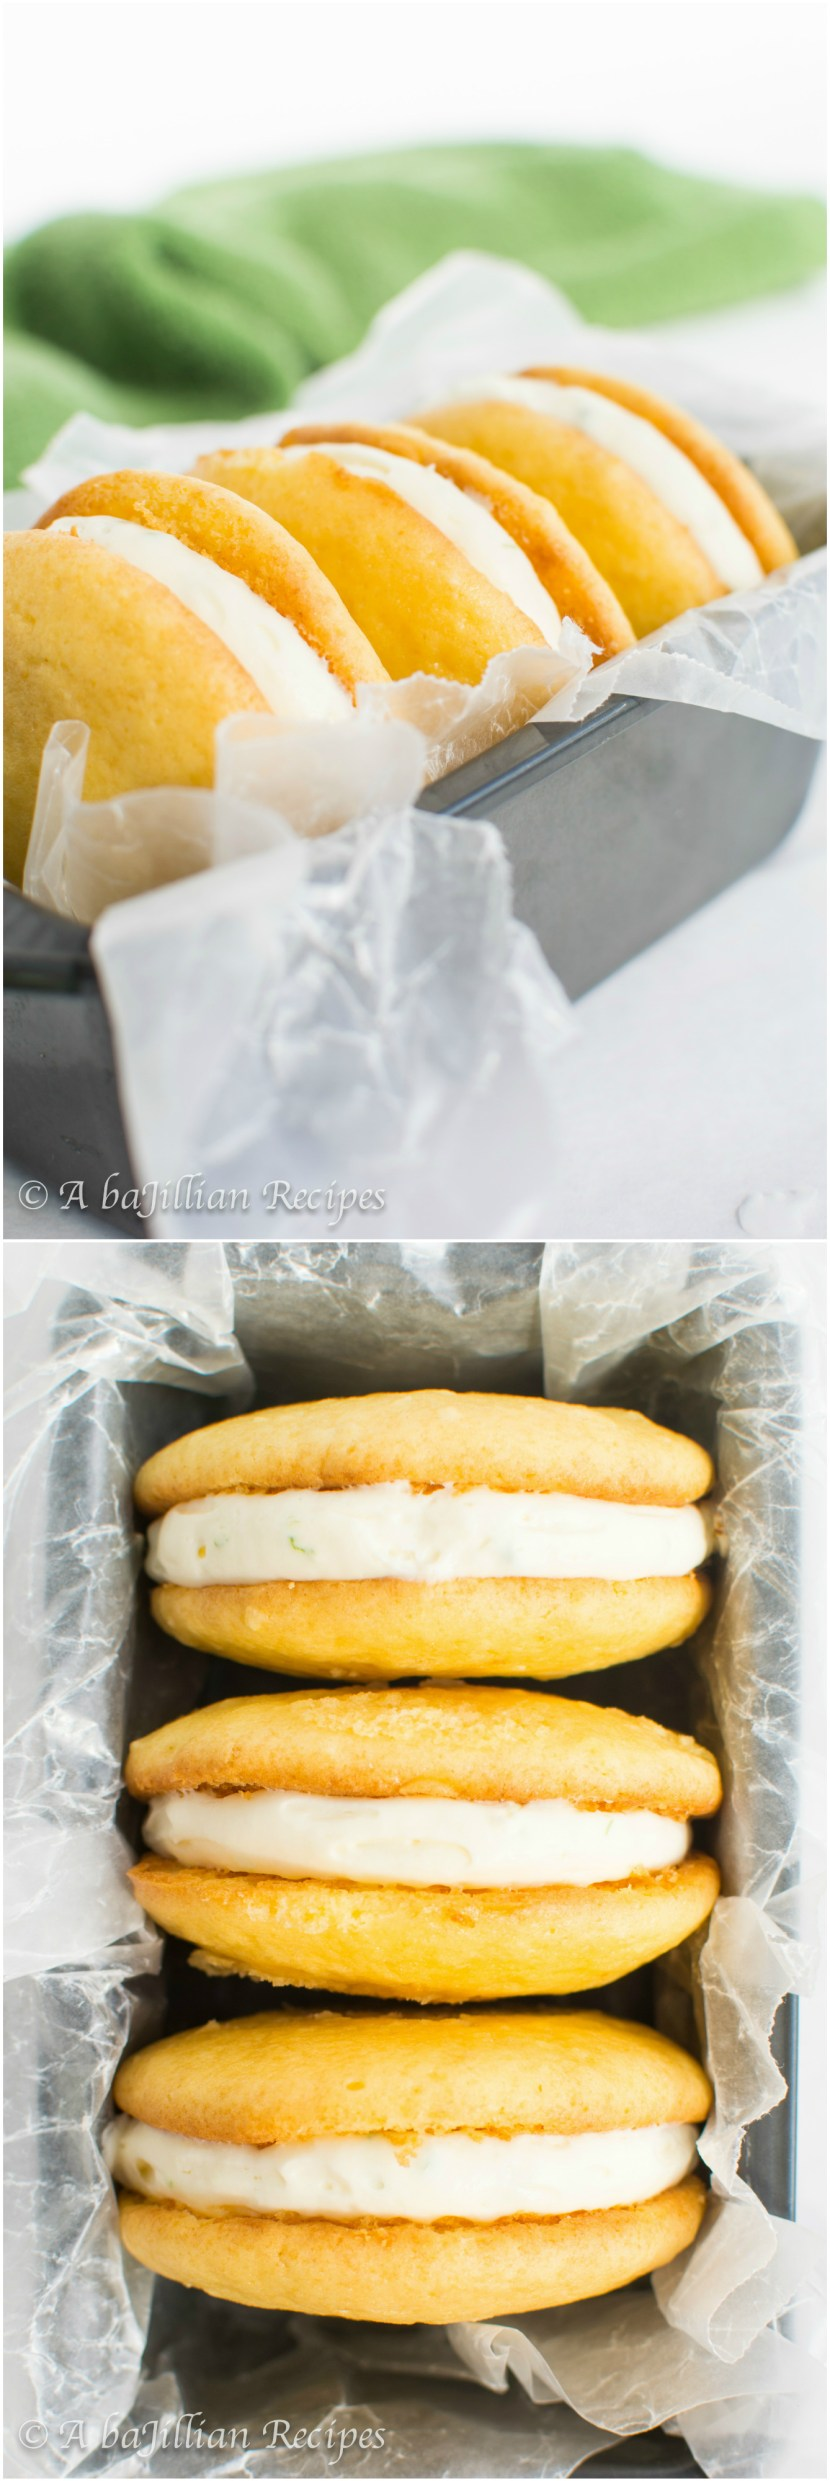 Coconut Lime Whoopie Pies | A baJillian Recipes3